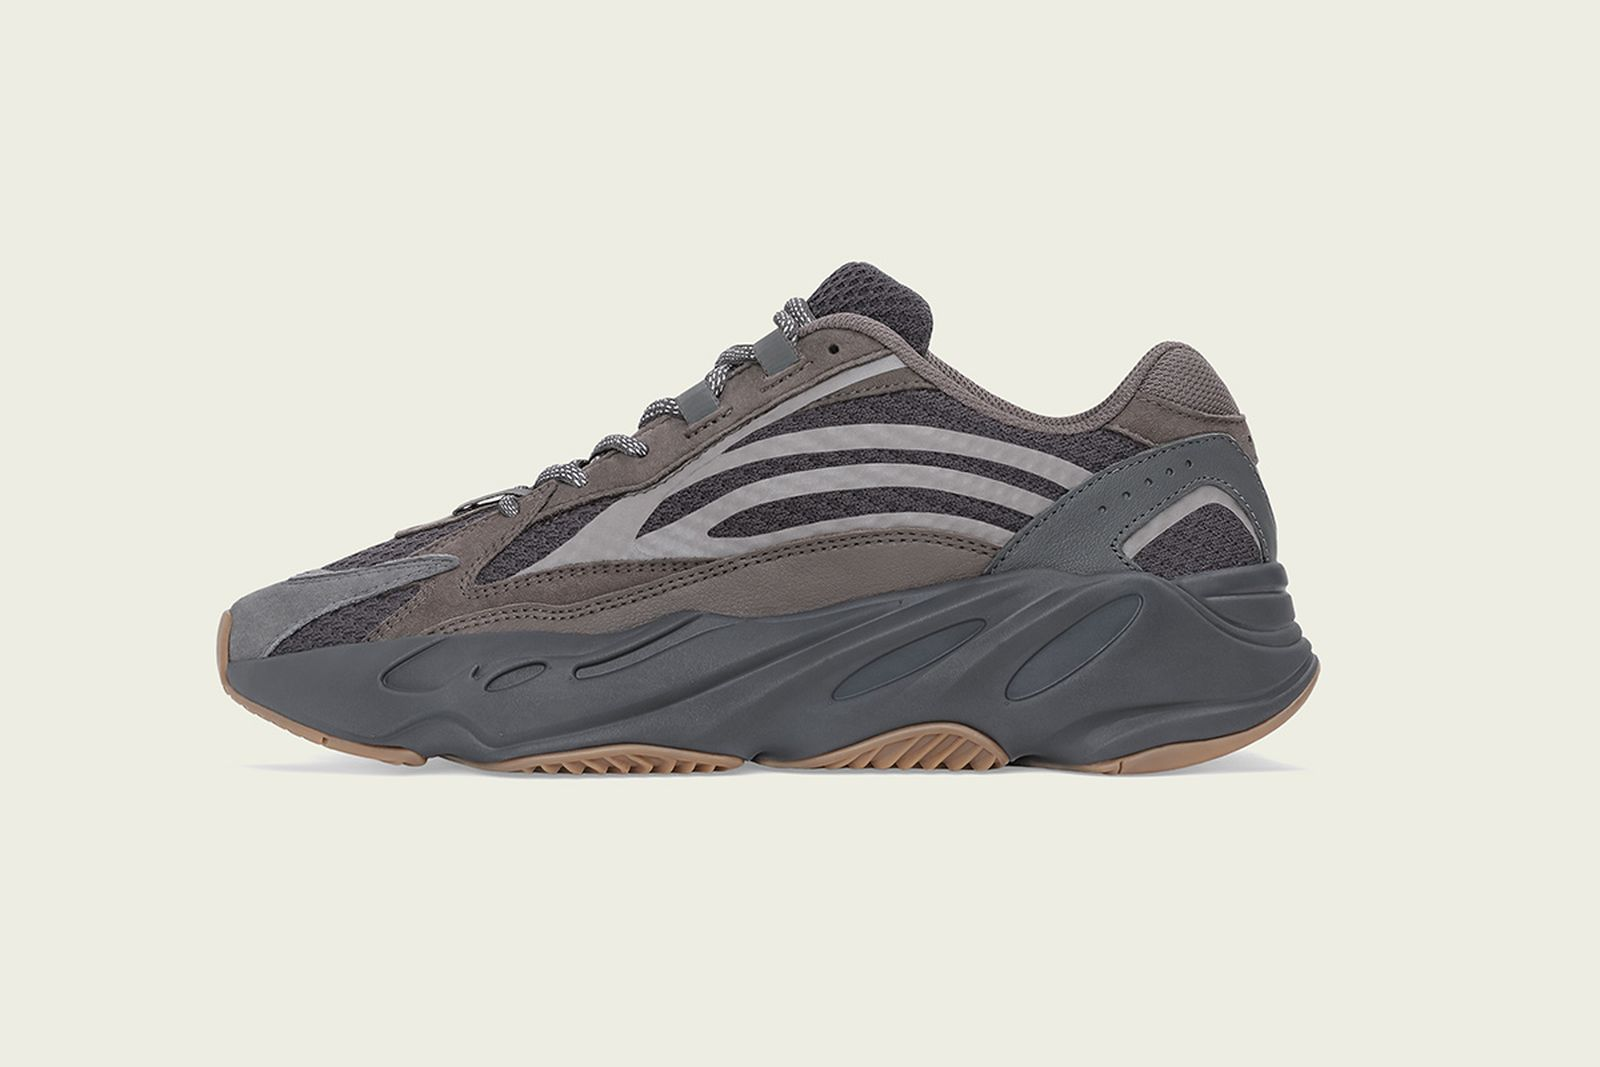 yeezy boost 700 geode price release date StockX adidas YEEZY Boost 700 V2 kanye west